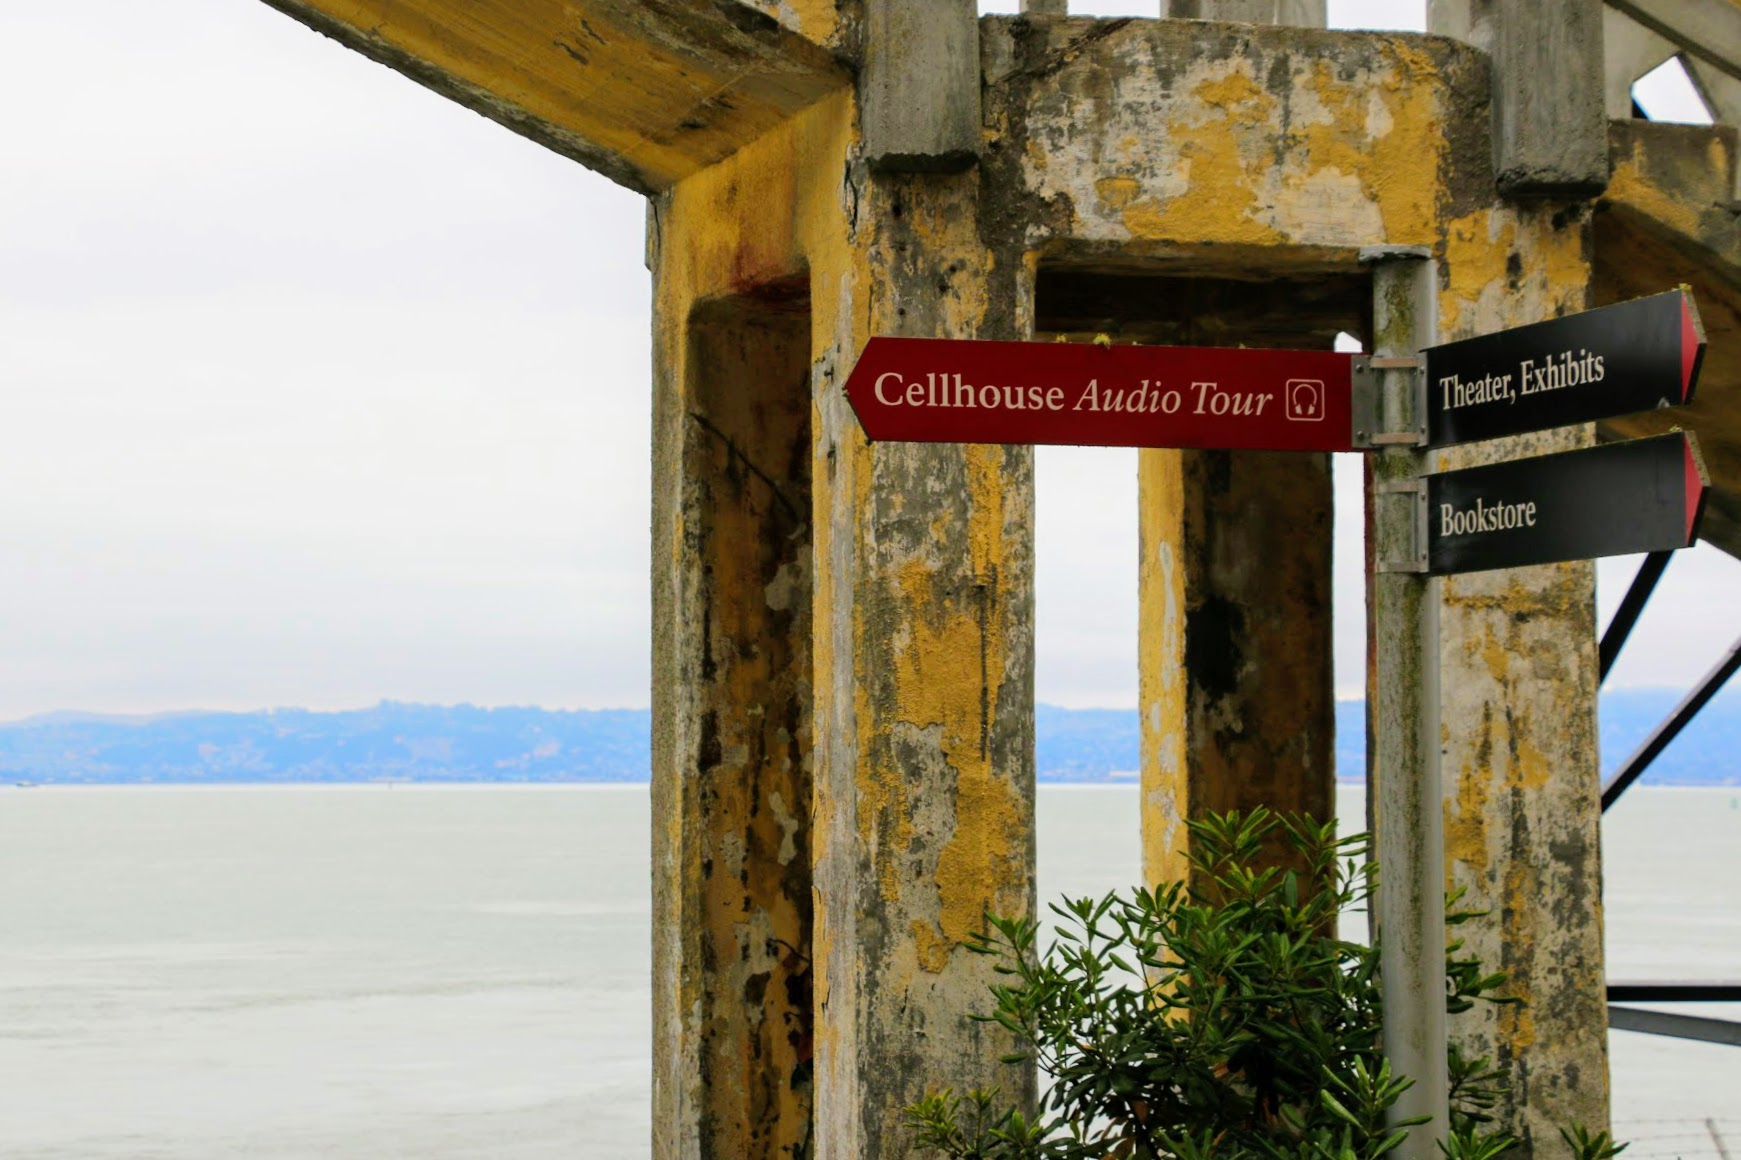 Alcatraz Island Cellhouse Audio Tour